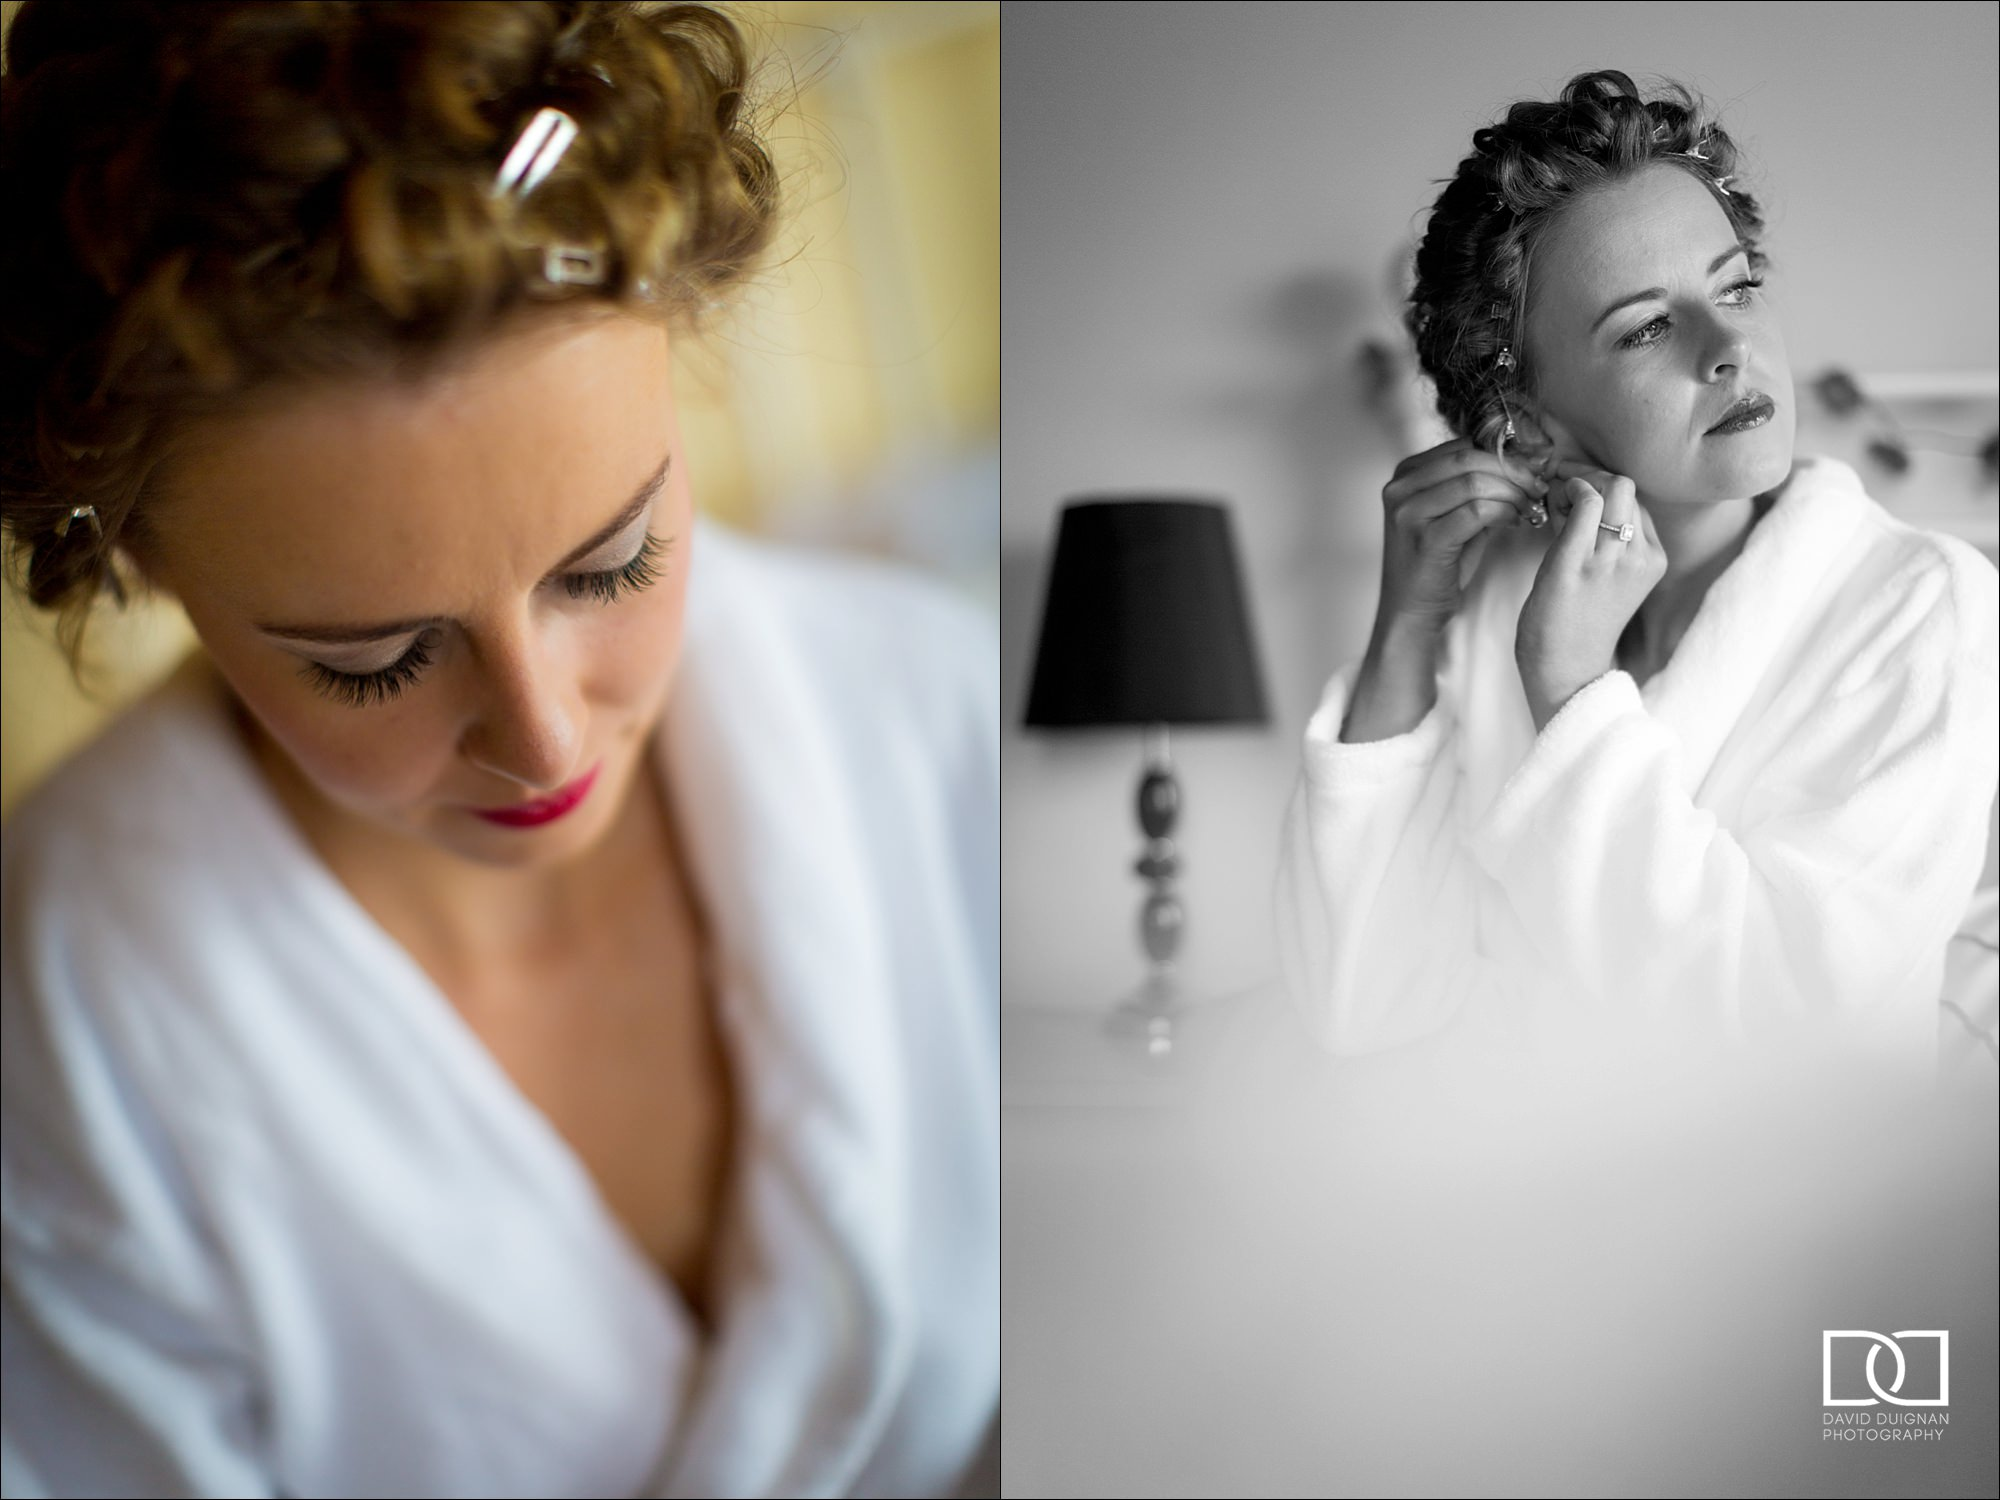 louth wedding photographer david duignan photography castle bellingham wedding Ireland 0010